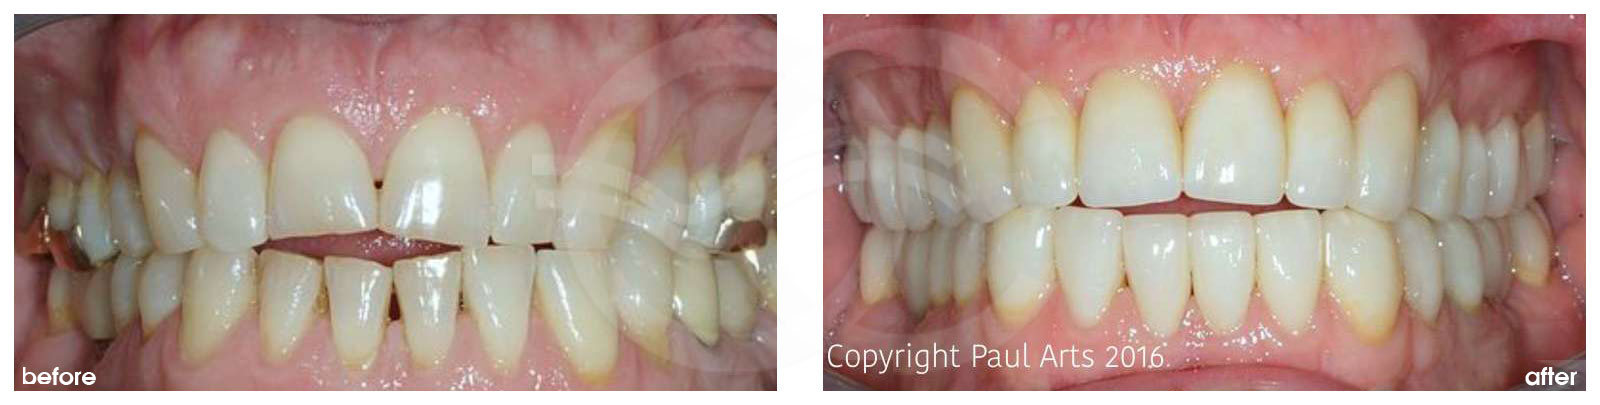 Cosmetic Dentistry Before After Extensive Treatment of Heavy Grinder. Photo frontal Ocean Clinic Marbella Spain